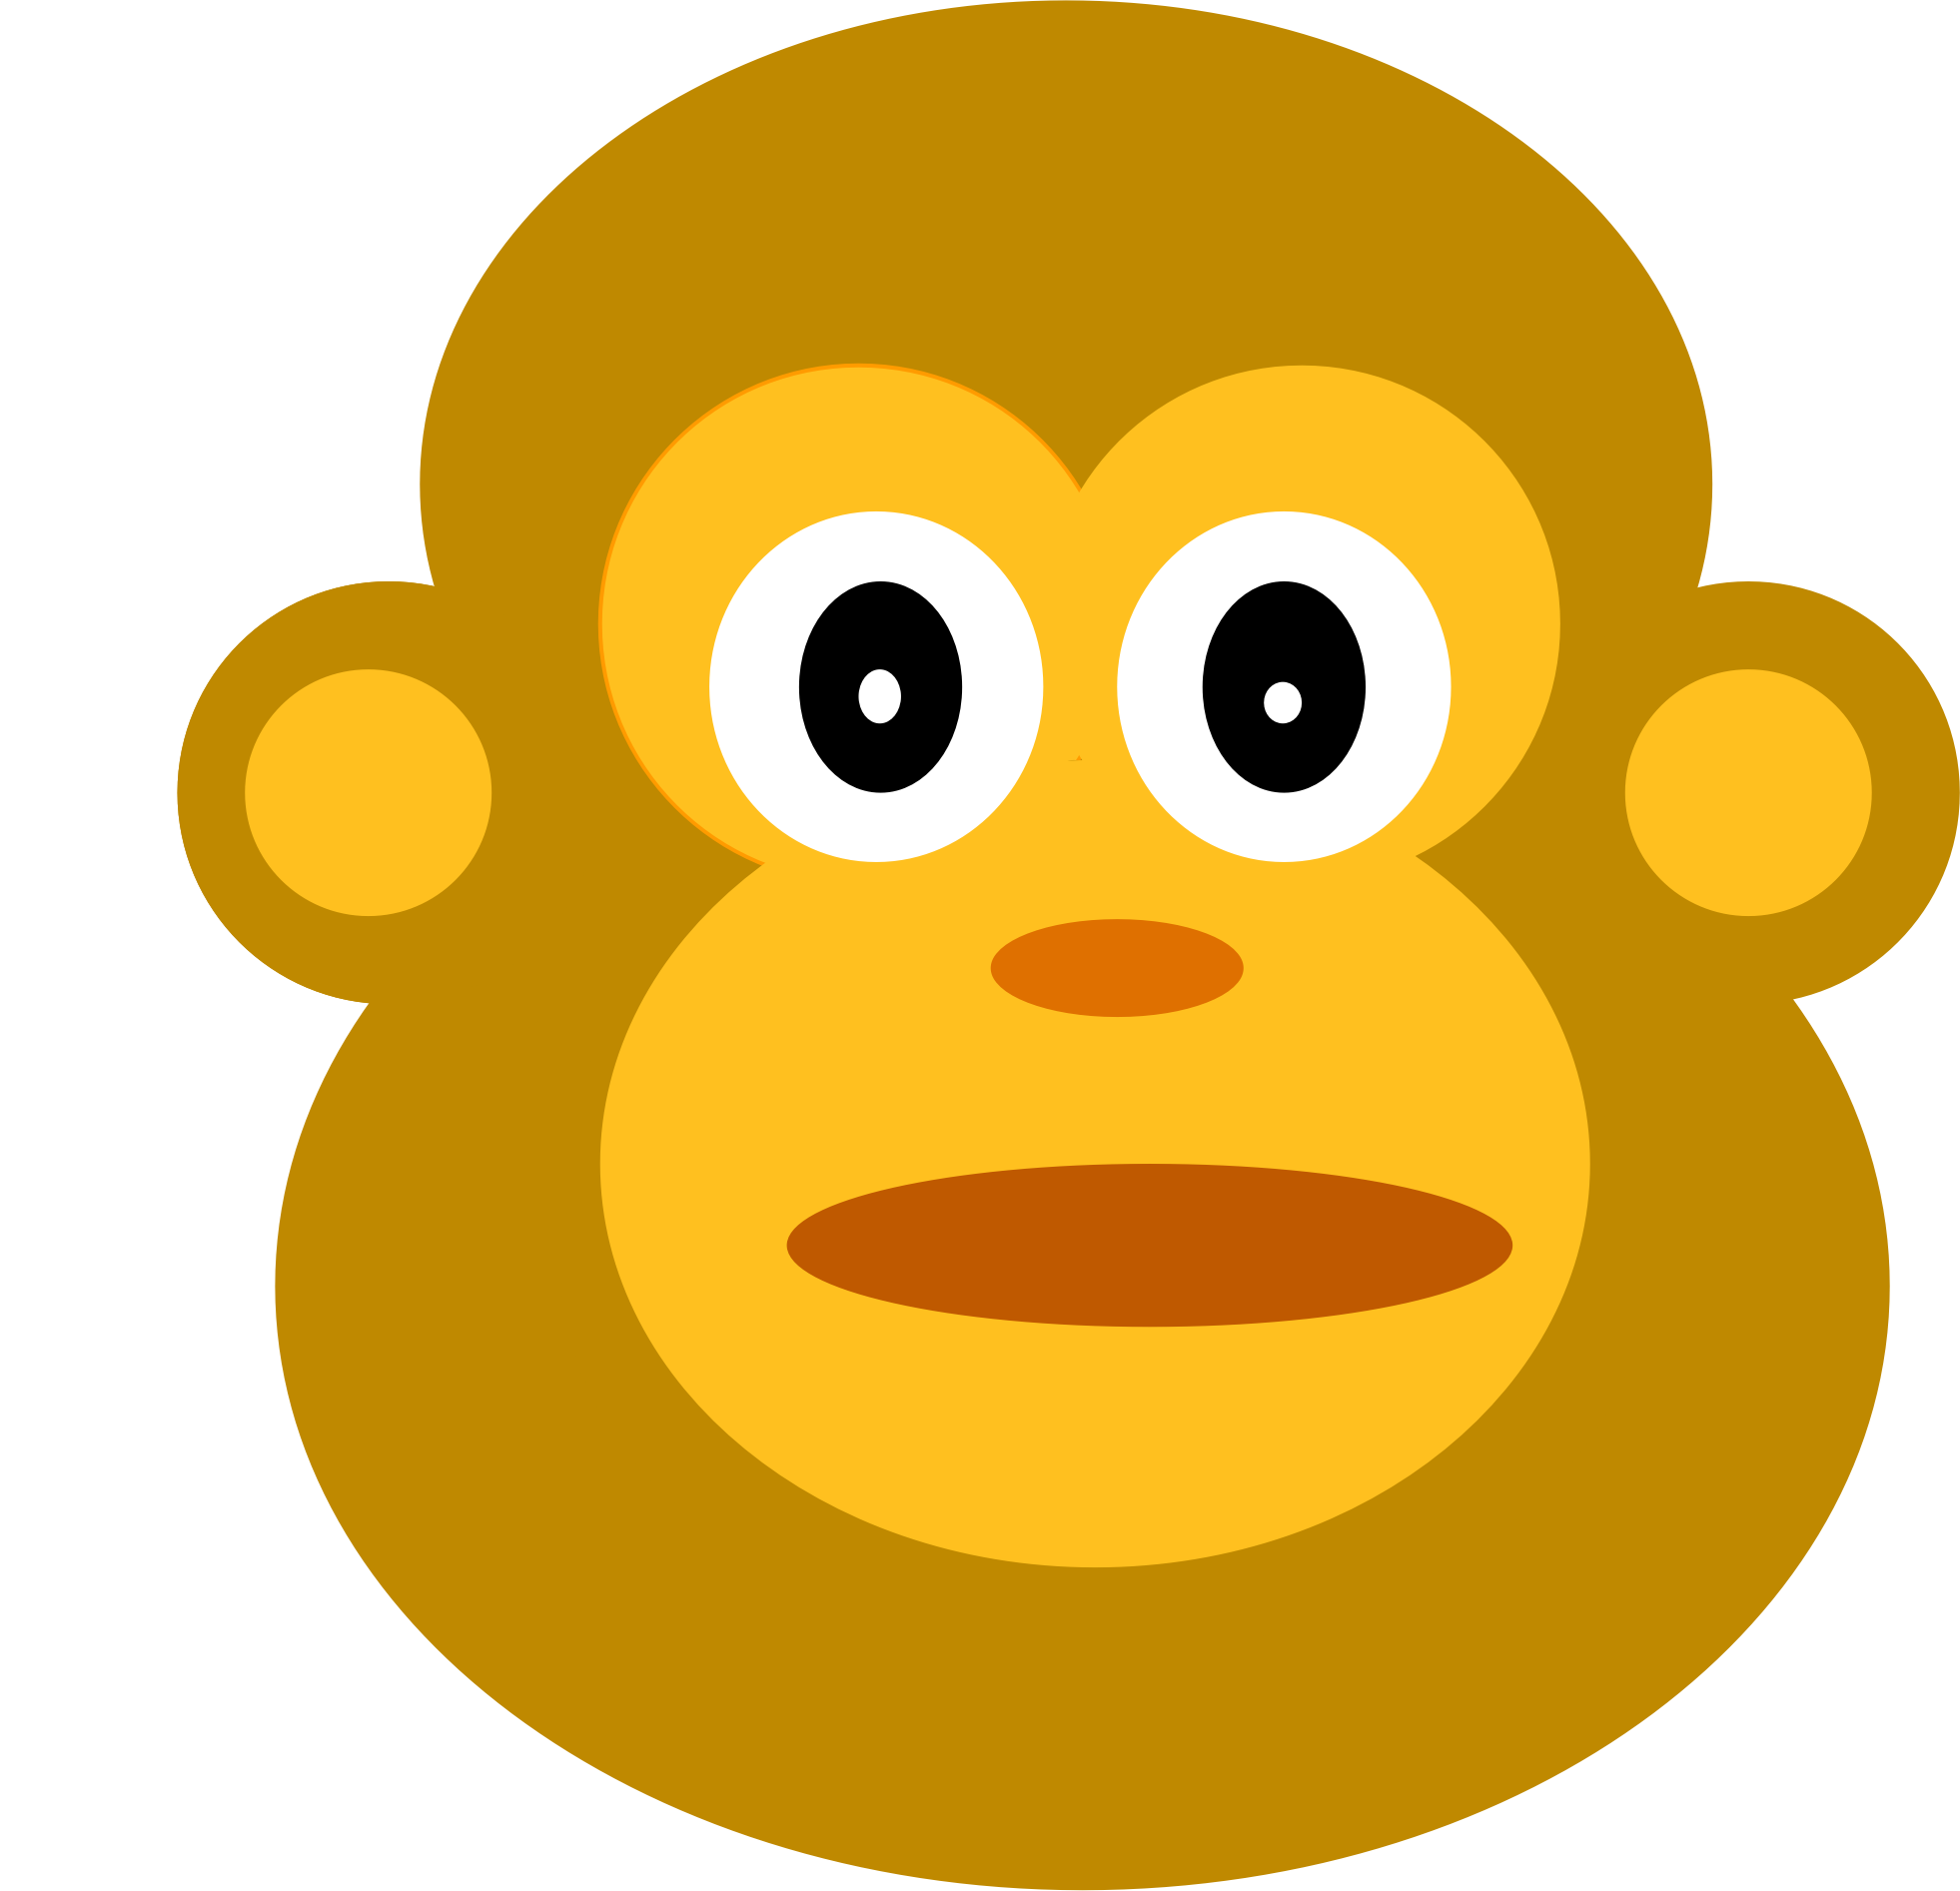 Monkey by chuajiahaomarcus